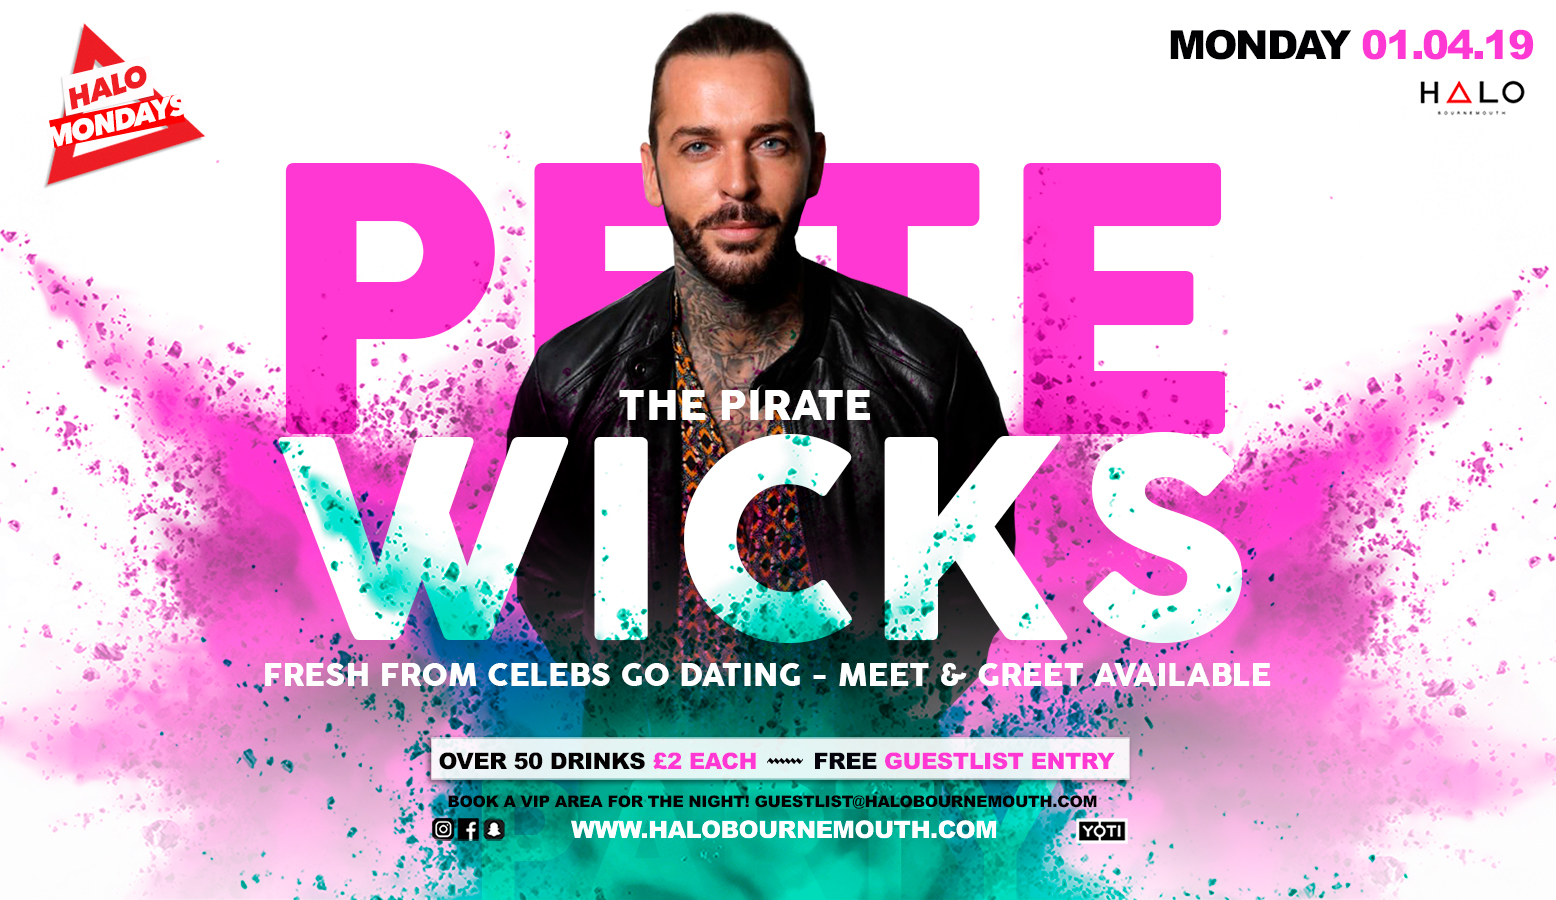 Halo Mondays w/ Pete Wicks 01.04.19 Halo Bournemouth